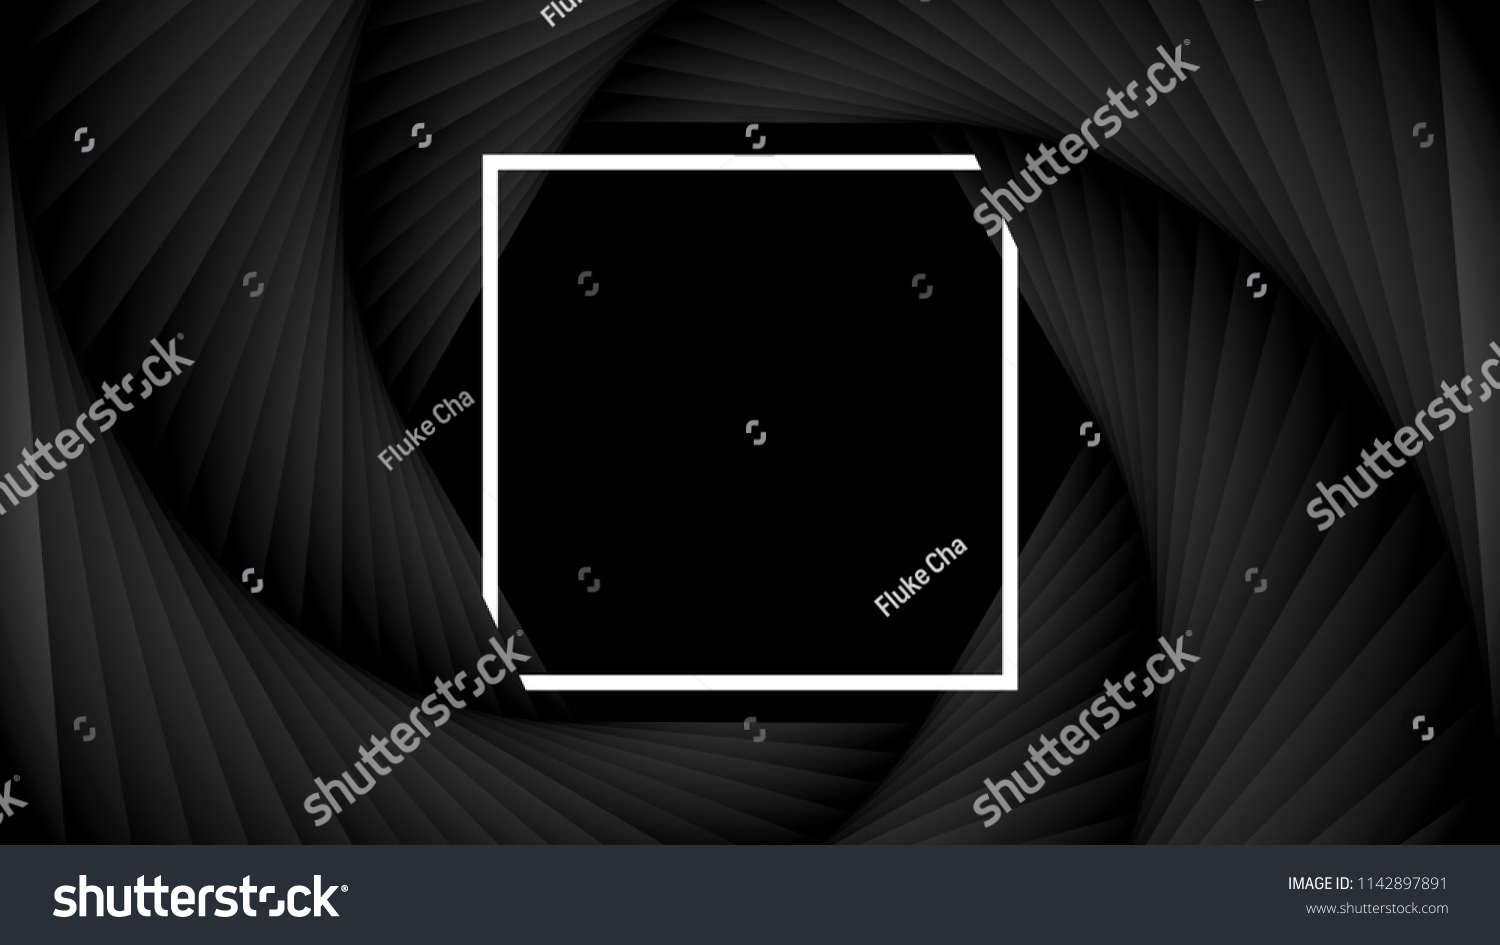 Black camera shutter lens aperture concept with white frame on the center. Abstract background illustration vector